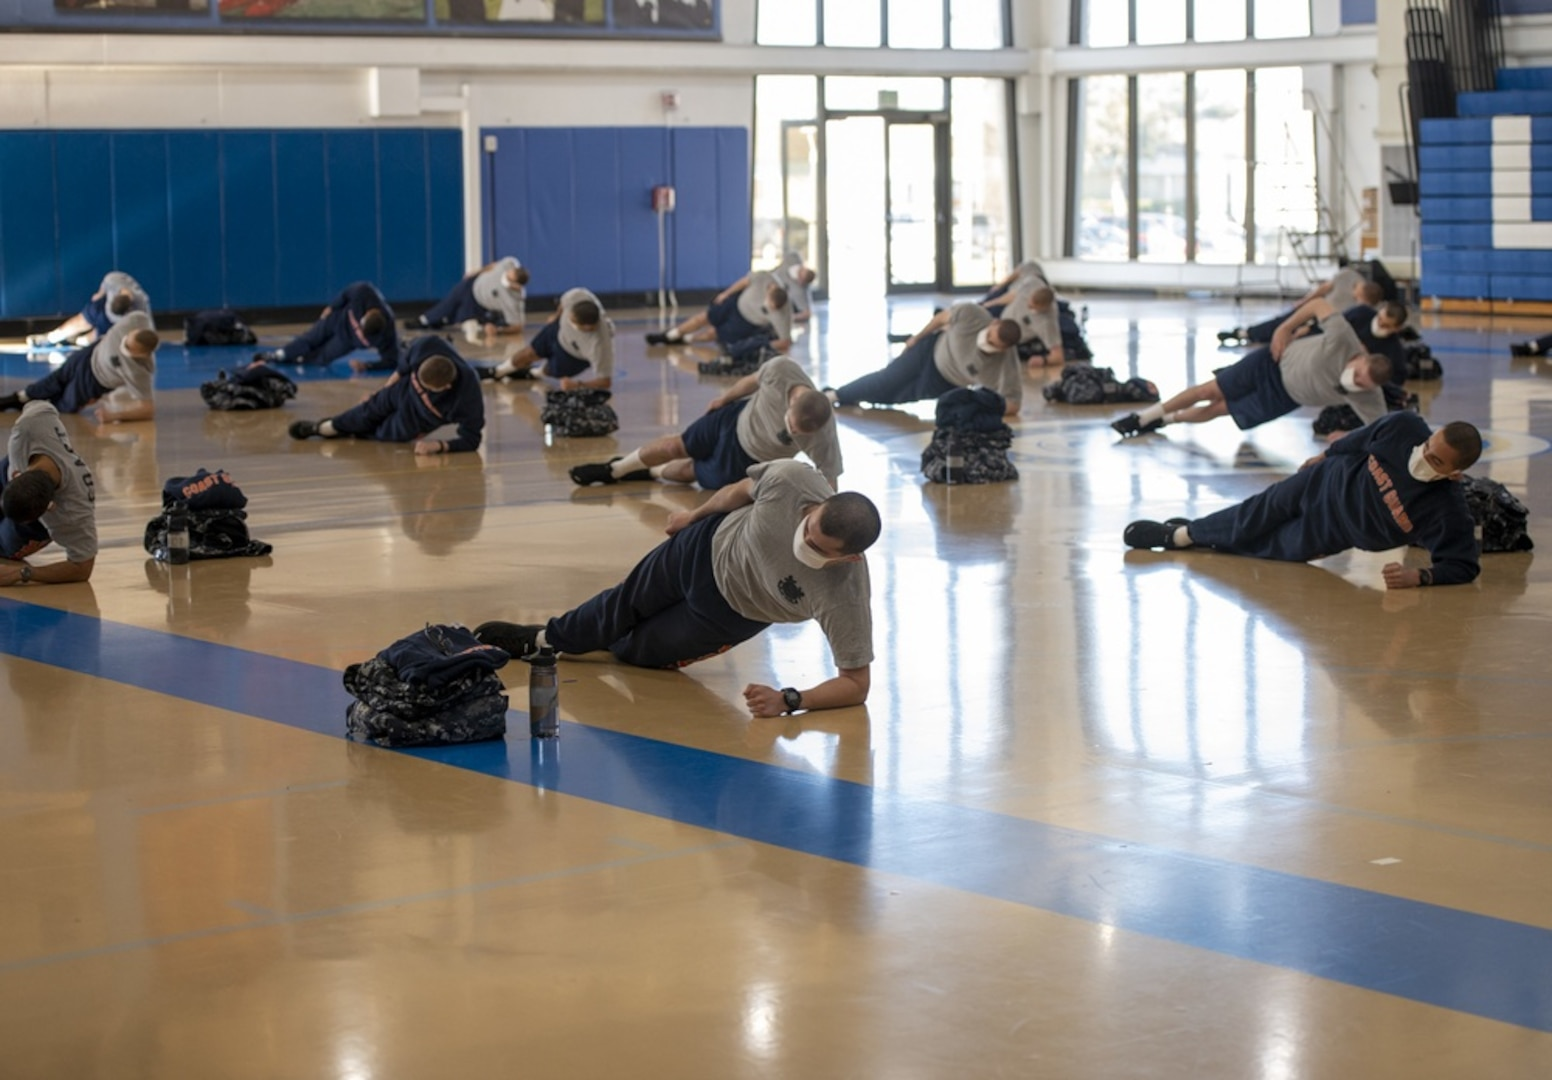 Recruits from company Sierra-199 participate in physical fitness as part of their modified training schedule in the gym at U.S. Coast Guard Training Center Cape May, N.J., Jan. 7, 2021. Training Center Cape May's mission is to deliver dynamic training that sets the foundation for the Coast Guard's professional culture and develops job-ready skills in our recruits to build our workforce for generations to come. (U.S. Coast Guard photo by Seaman Josalyn Brown)